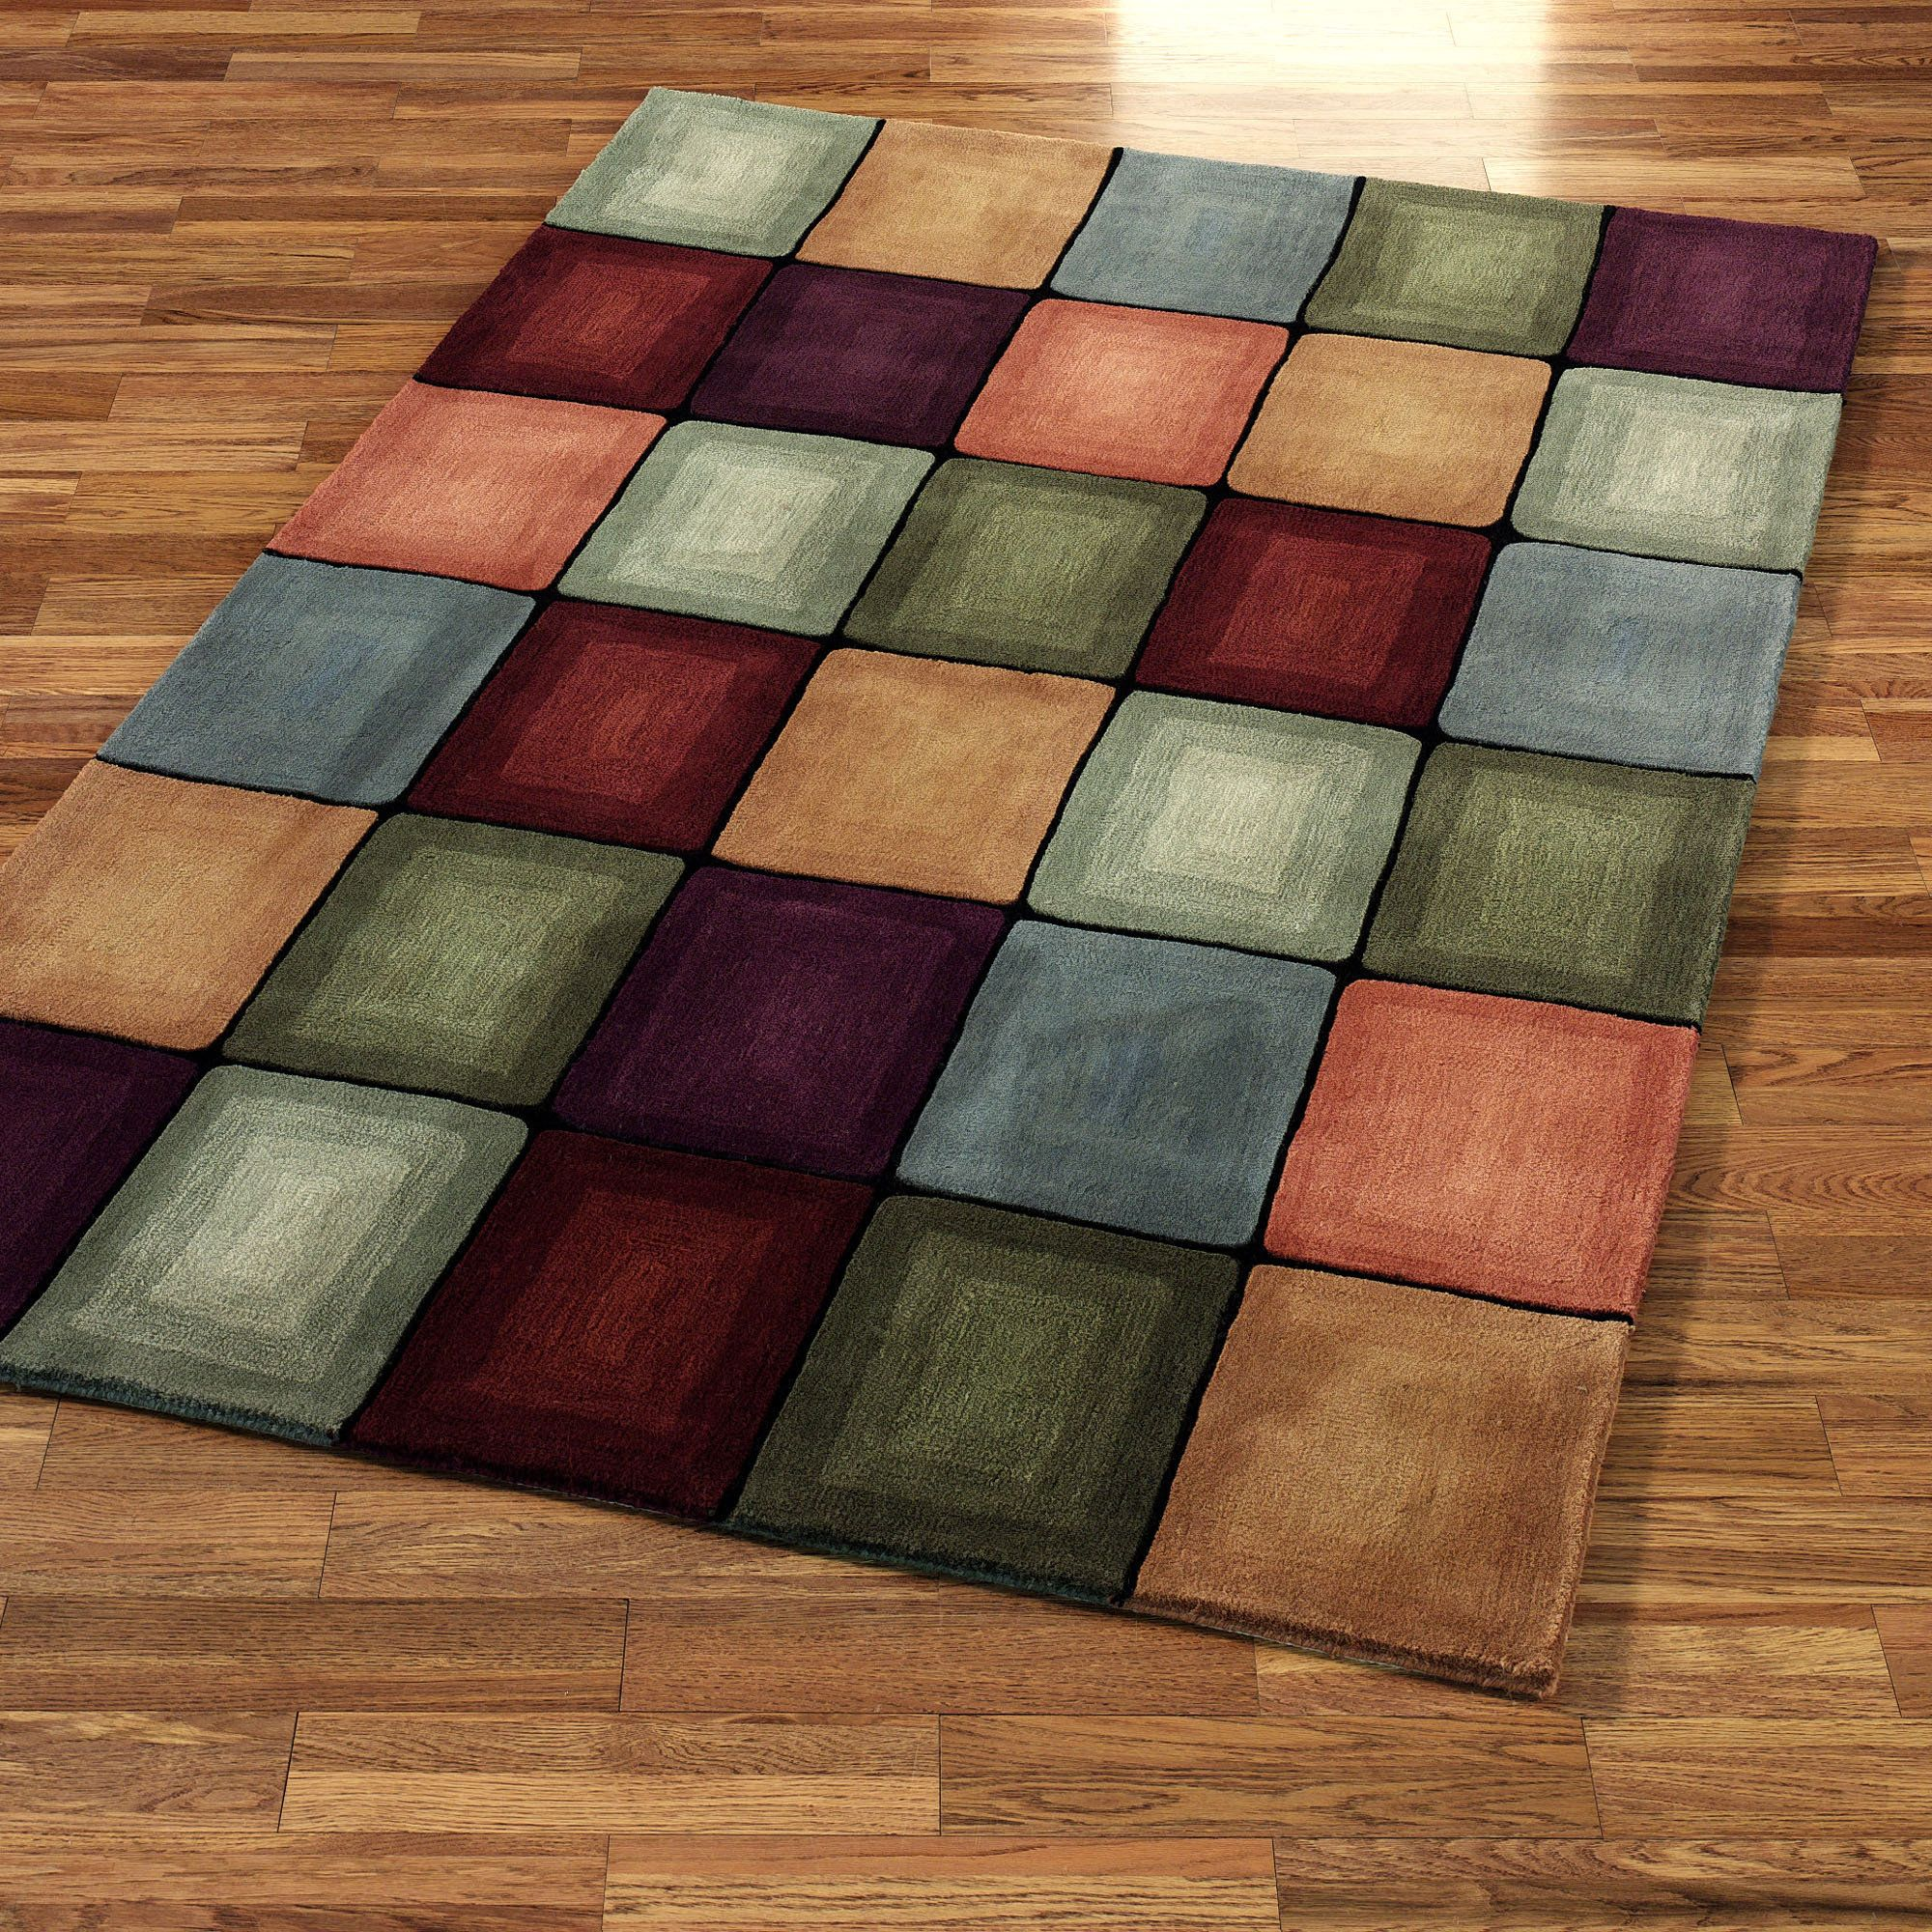 Decorations Square Area Rugs Contemporary With Colorful Area Rug